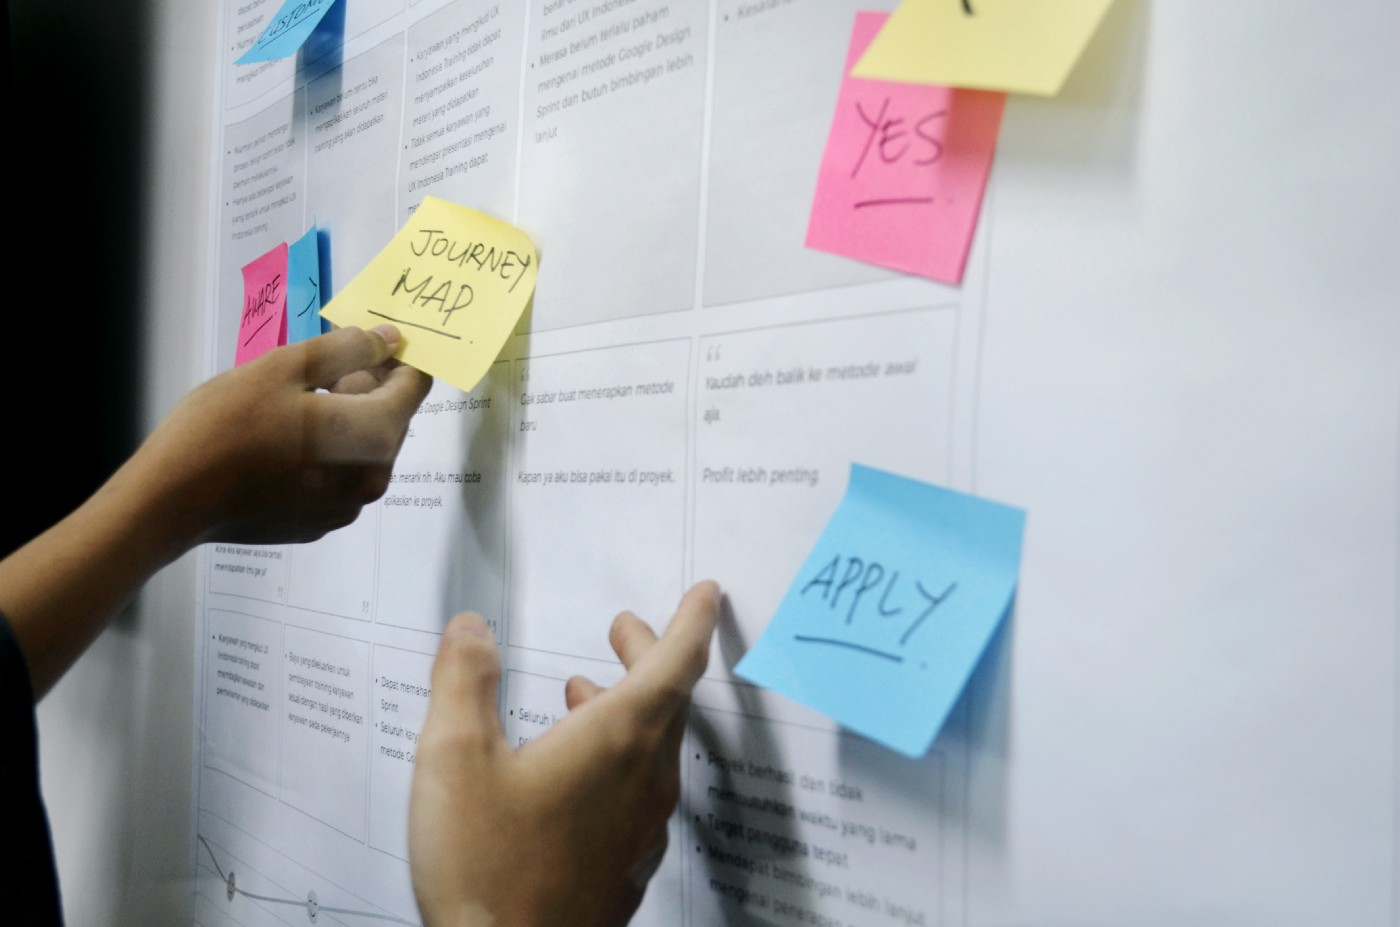 An image of post-its on a whiteboard mapping out a user journey